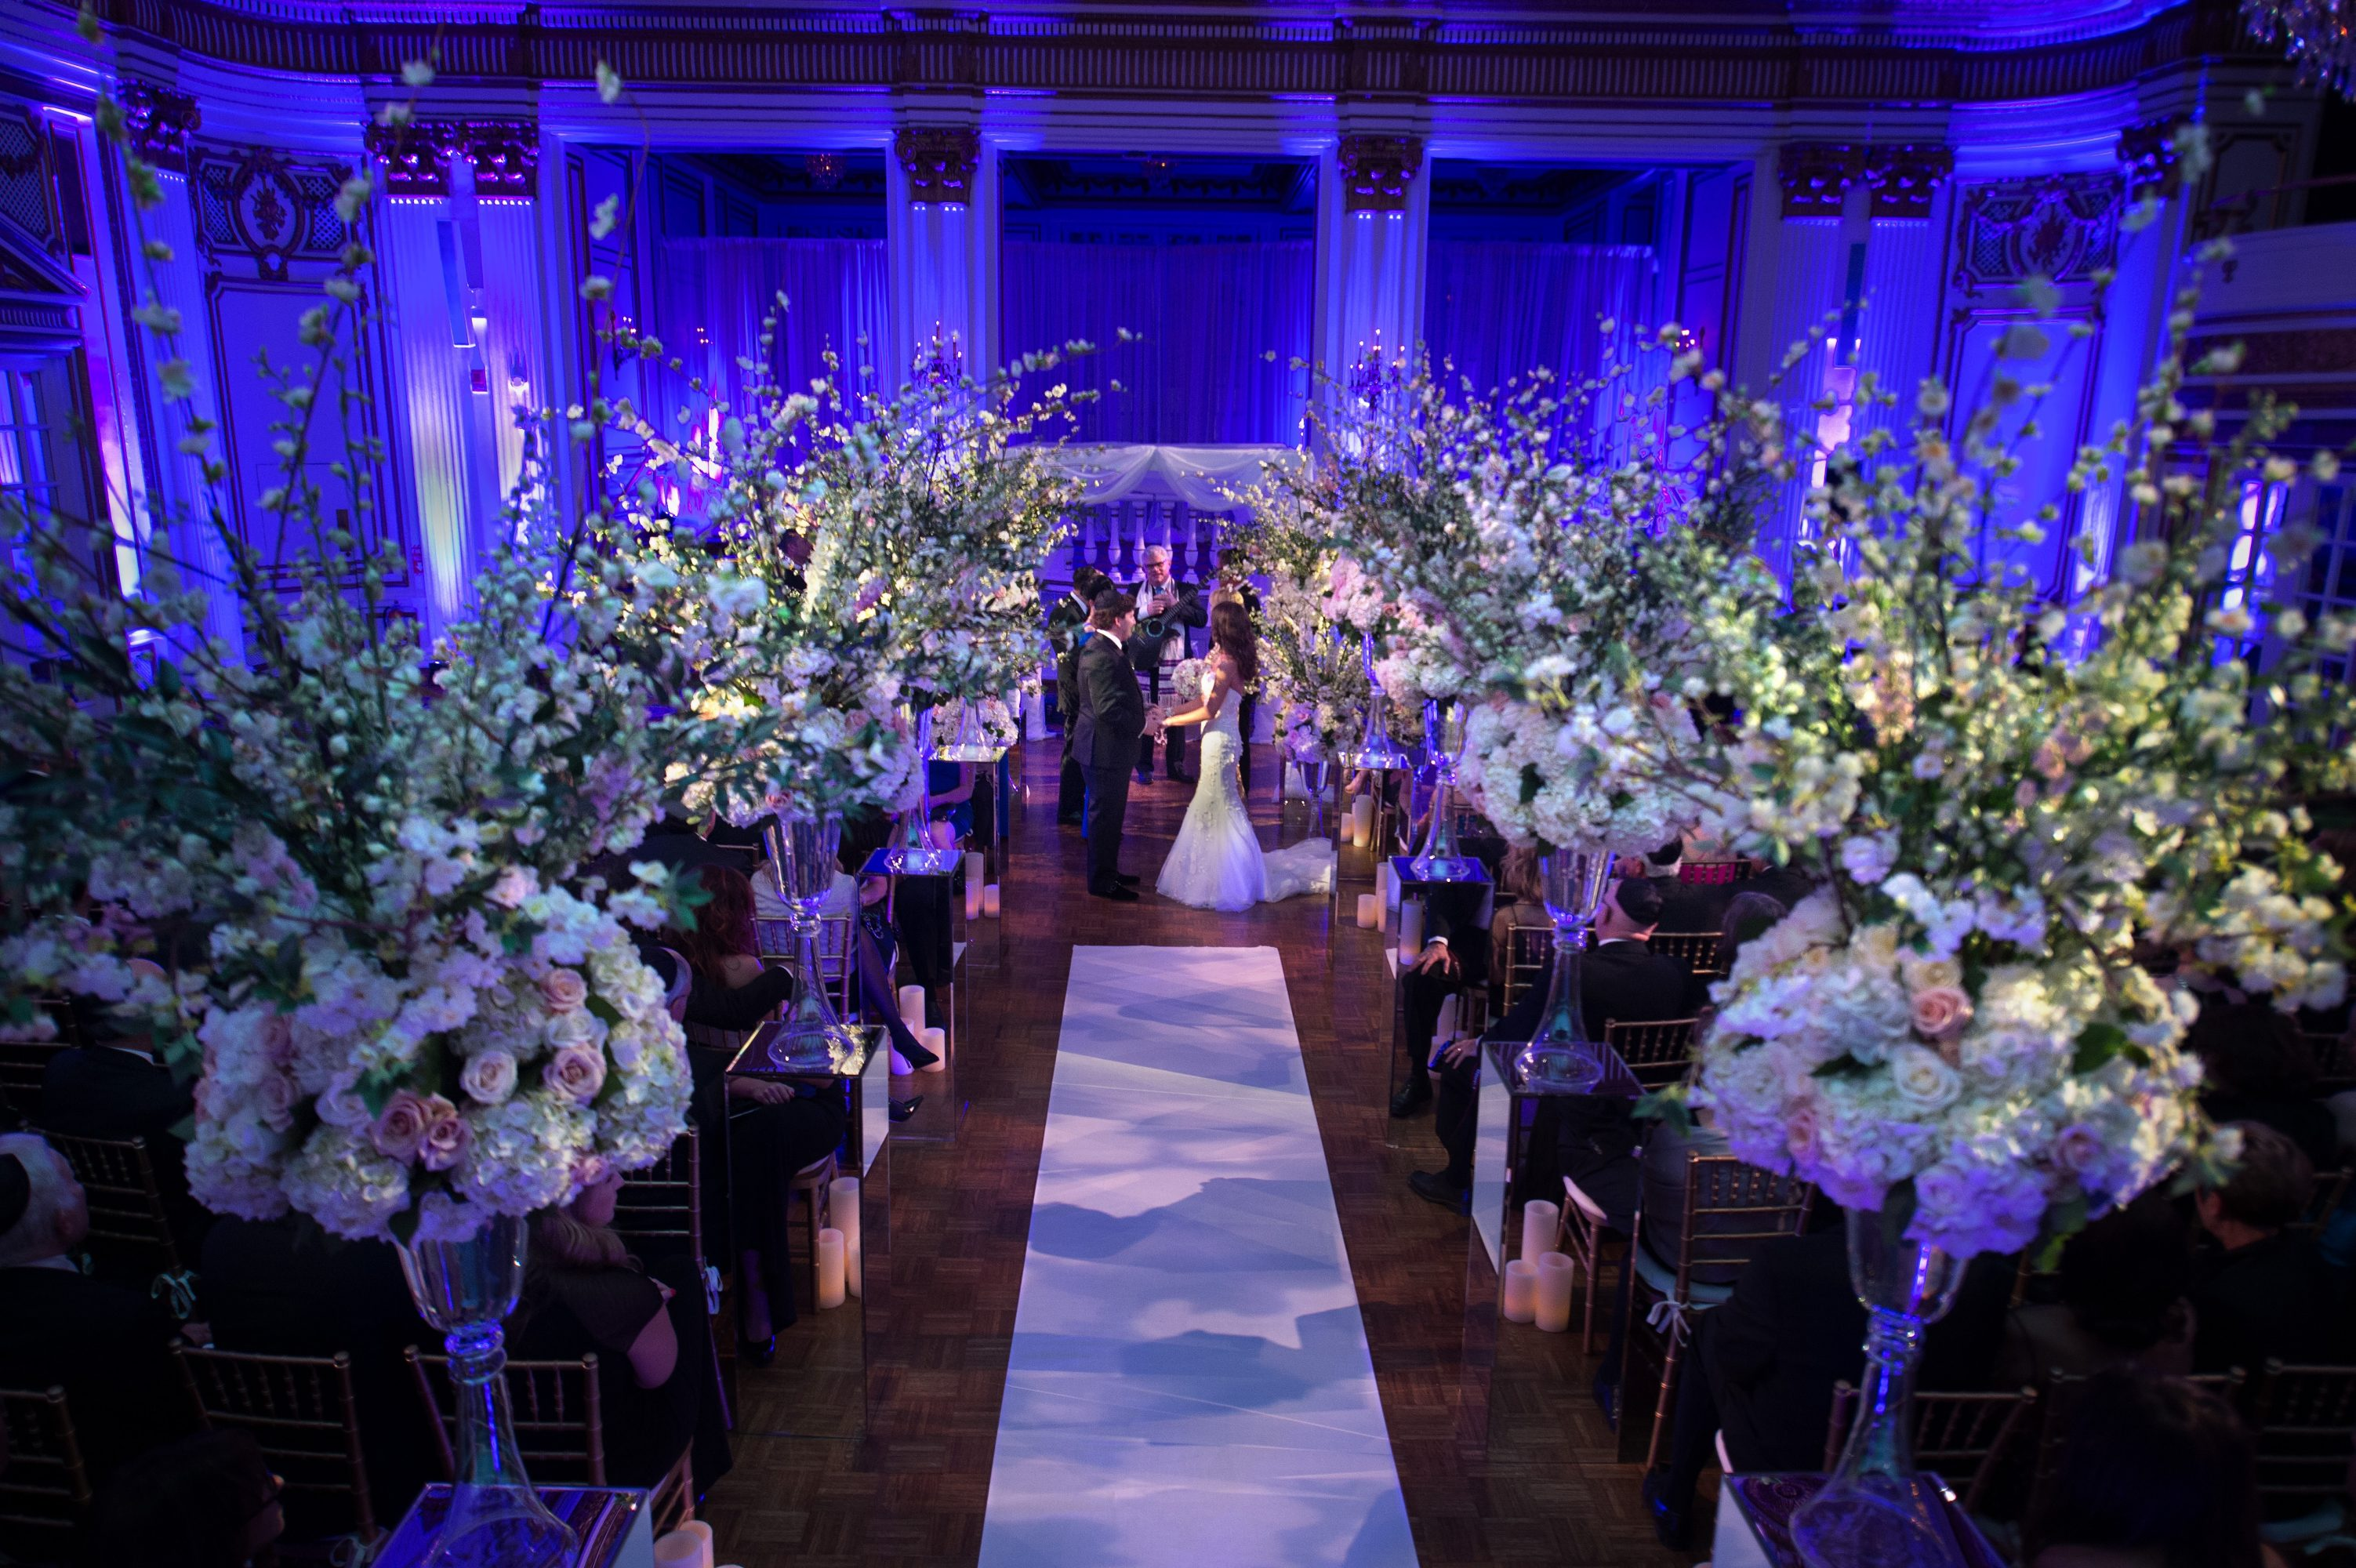 Flouer_Wedding_Fairmont_Copley_Plaza